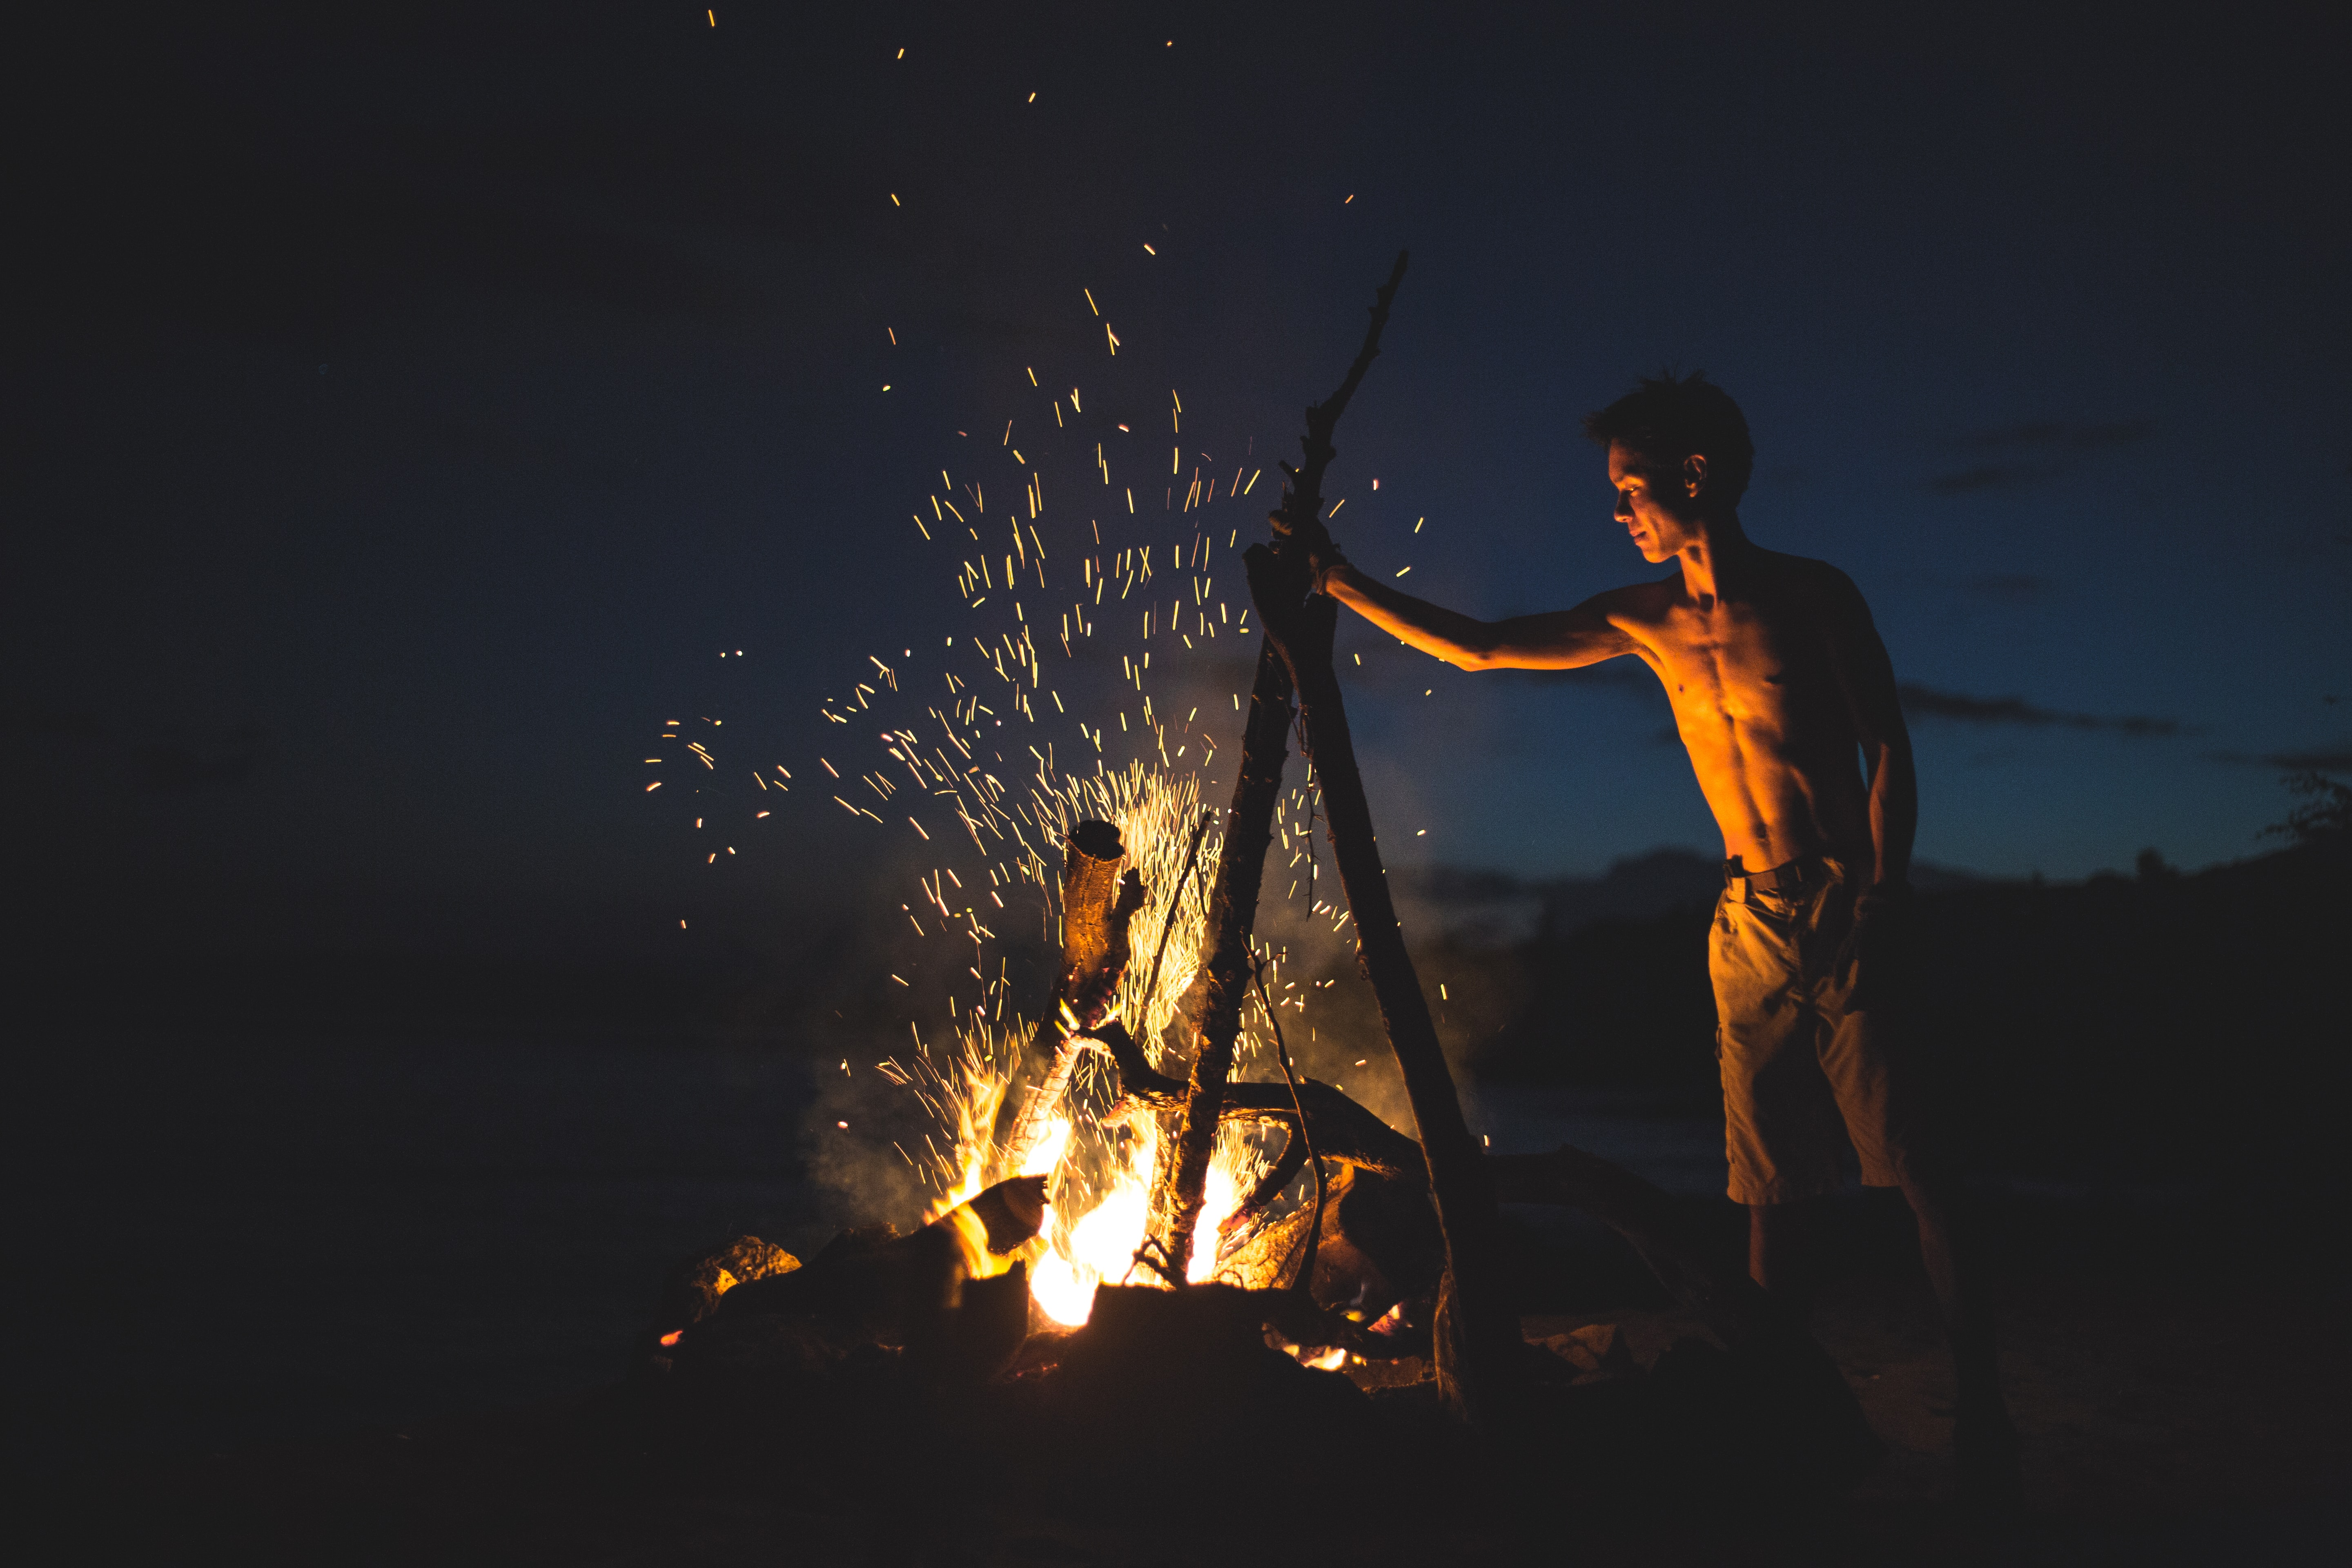 A man building a bonfire at McGregor Point at night